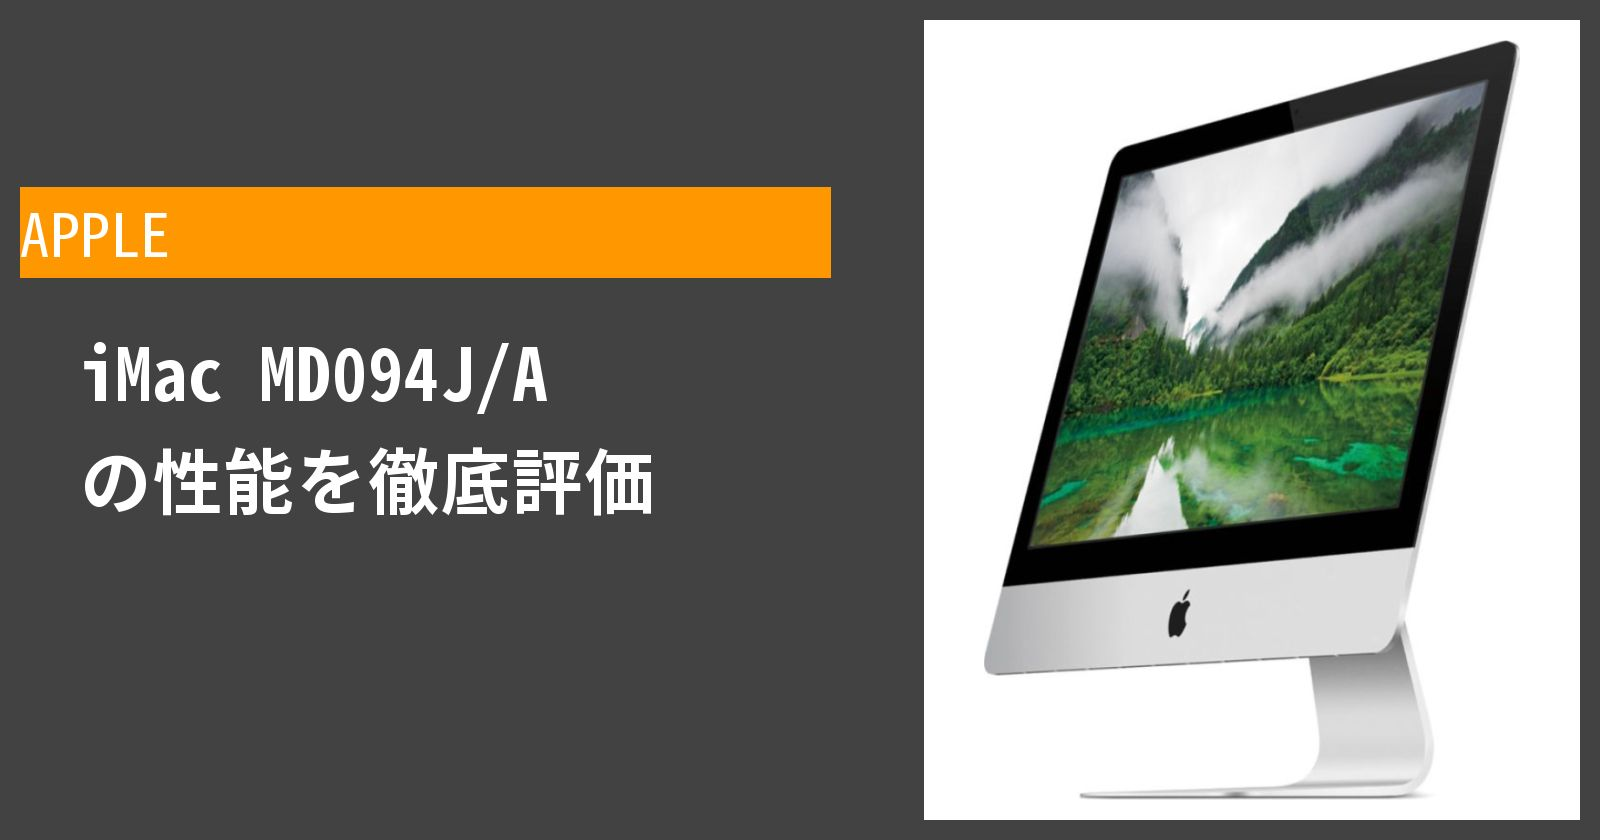 iMac MD094J/A の性能を徹底評価